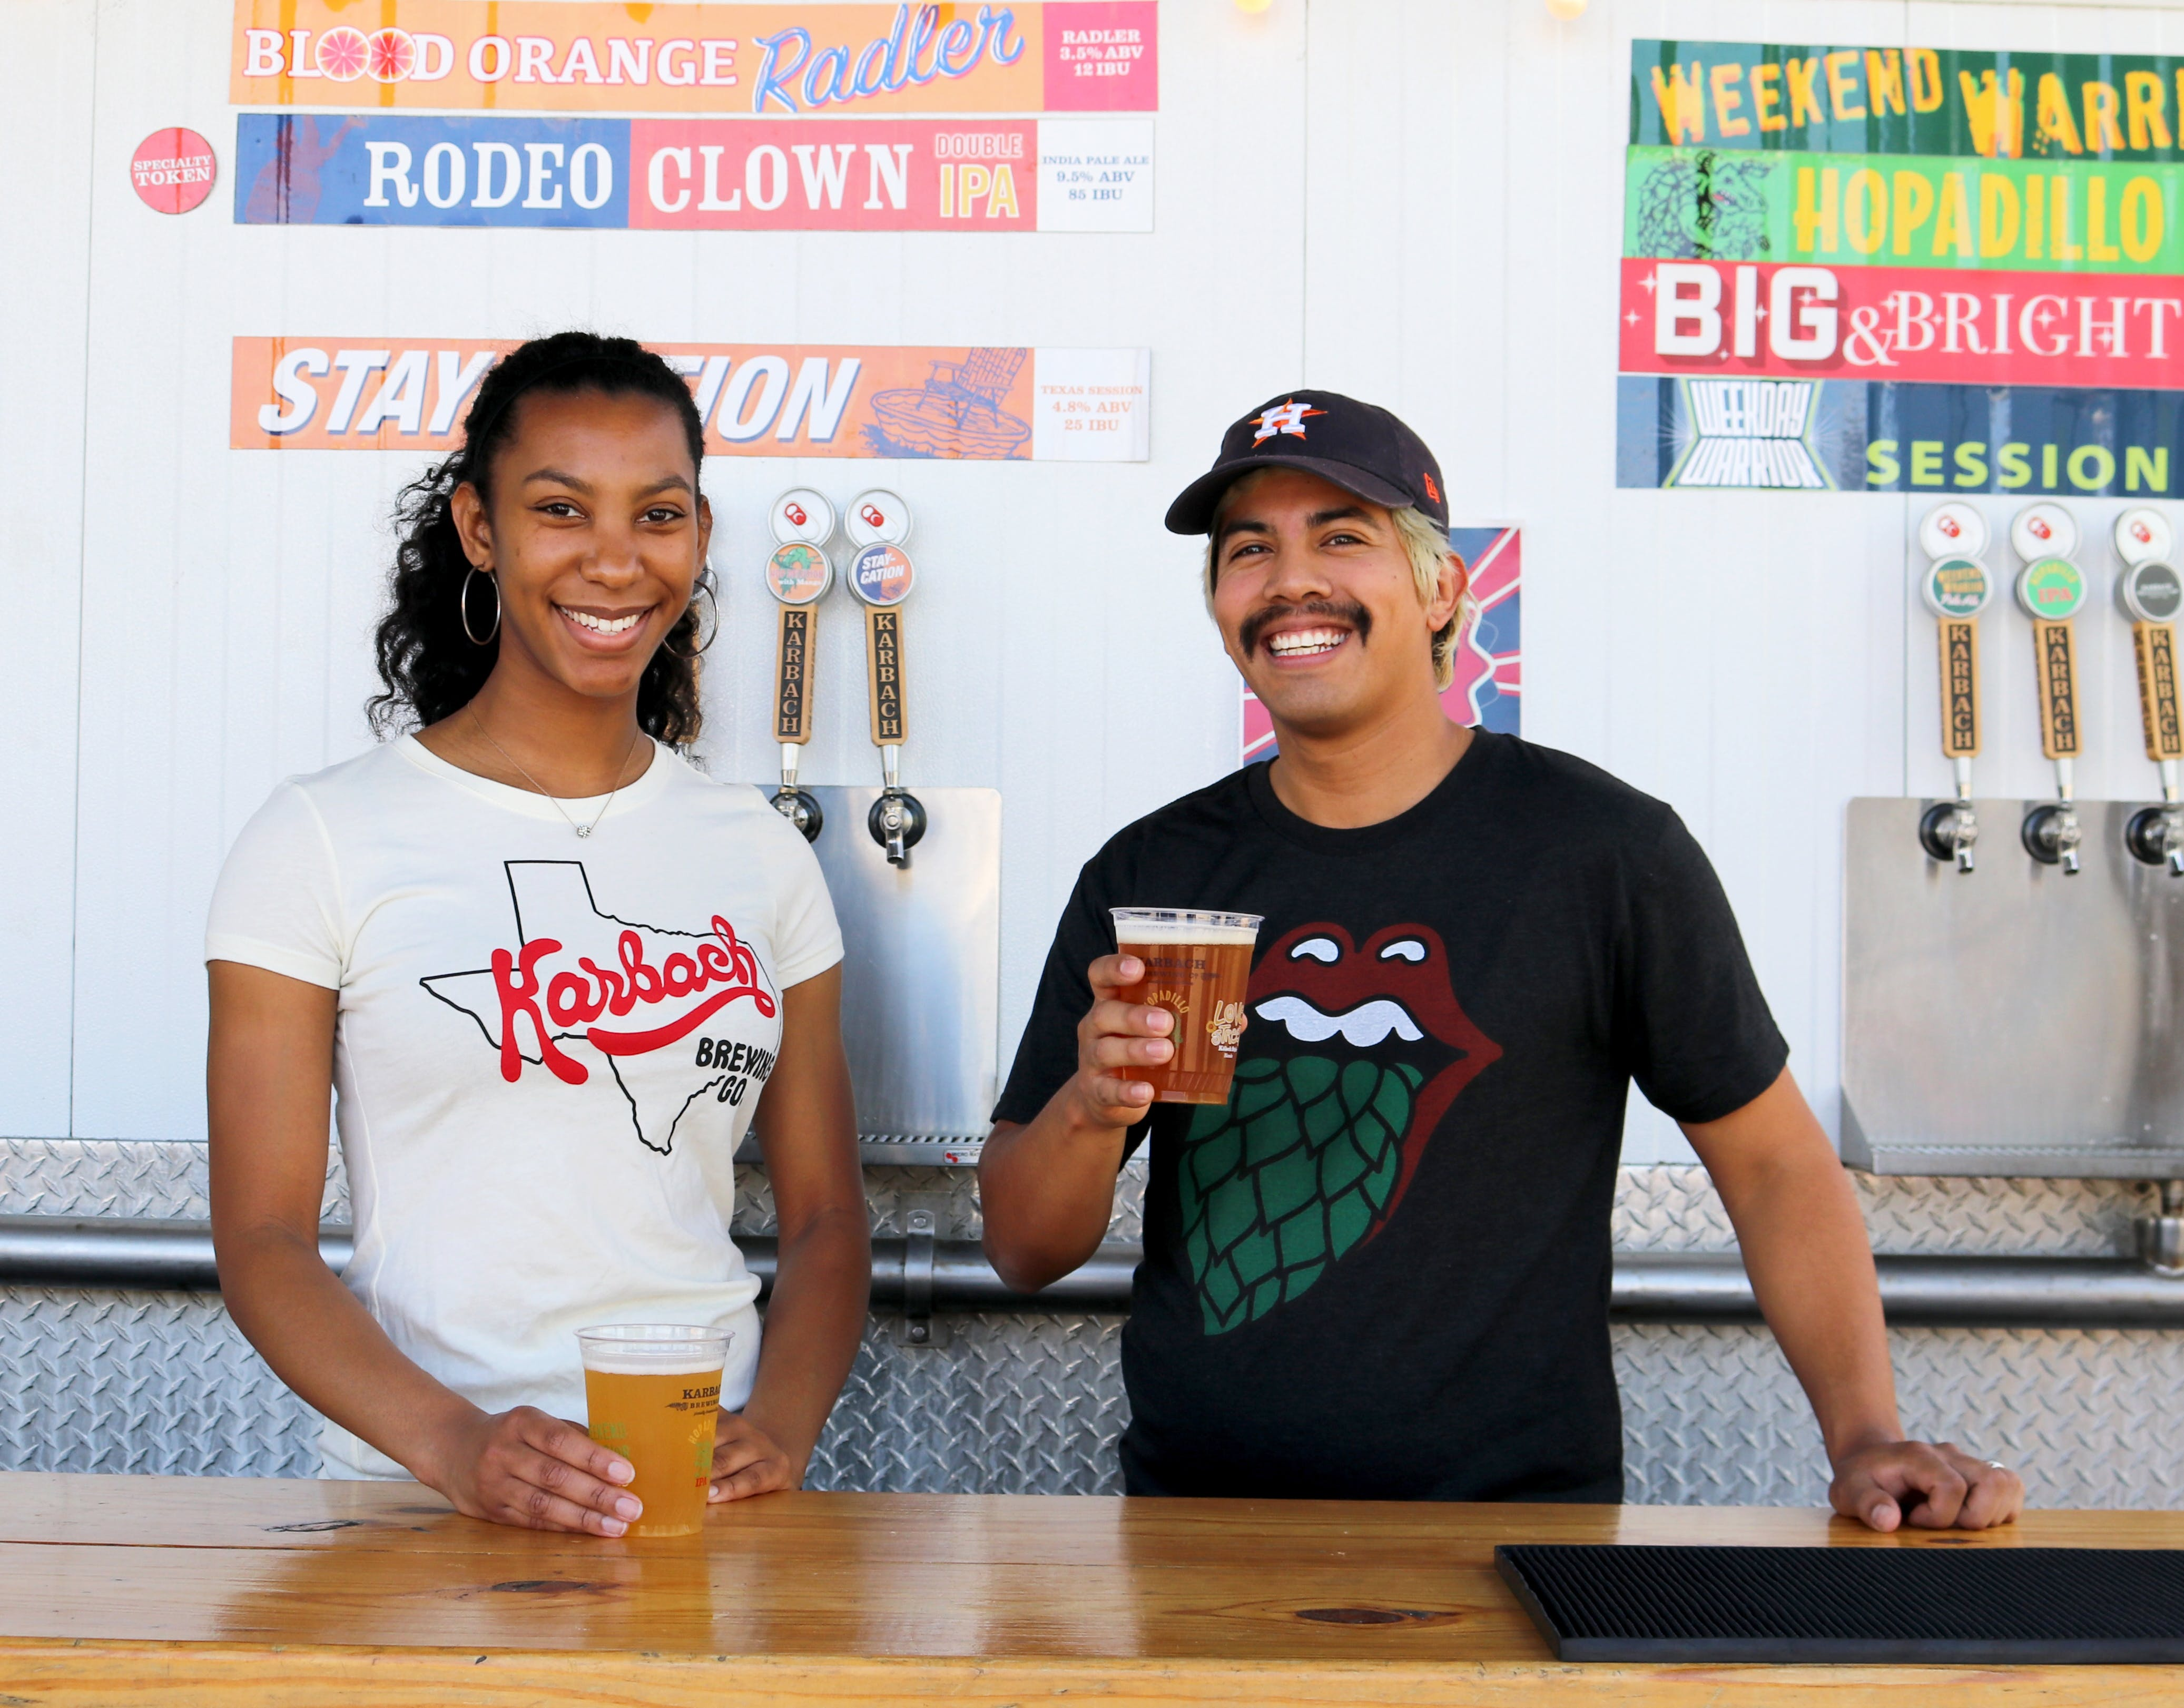 Man and Woman Smiling While Drinking Beers